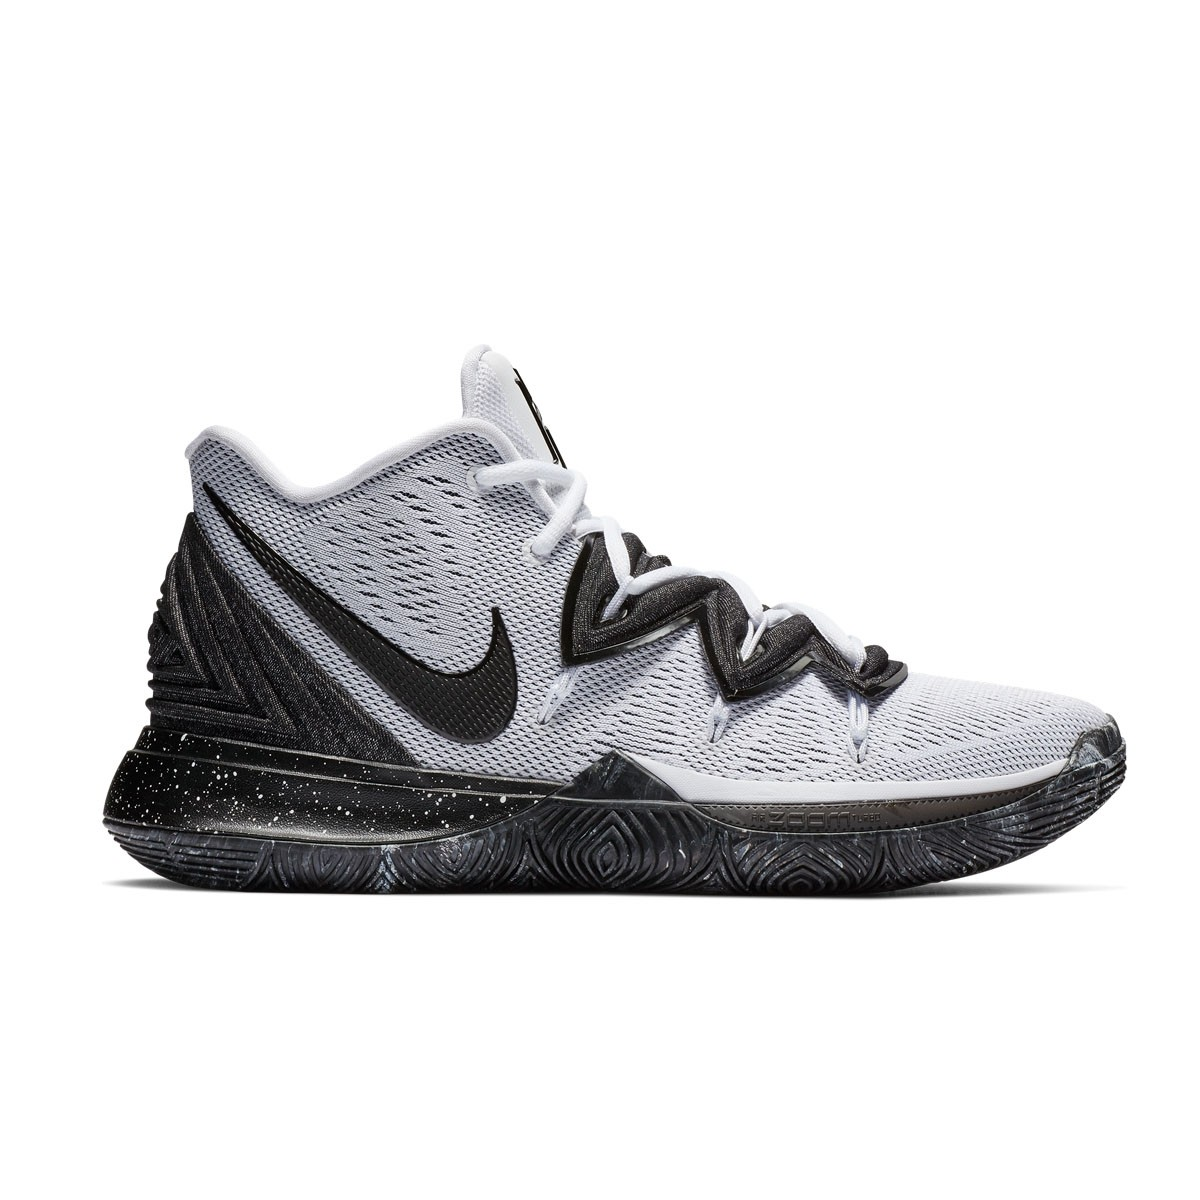 Nike Kyrie 5 'Cookies And Cream'